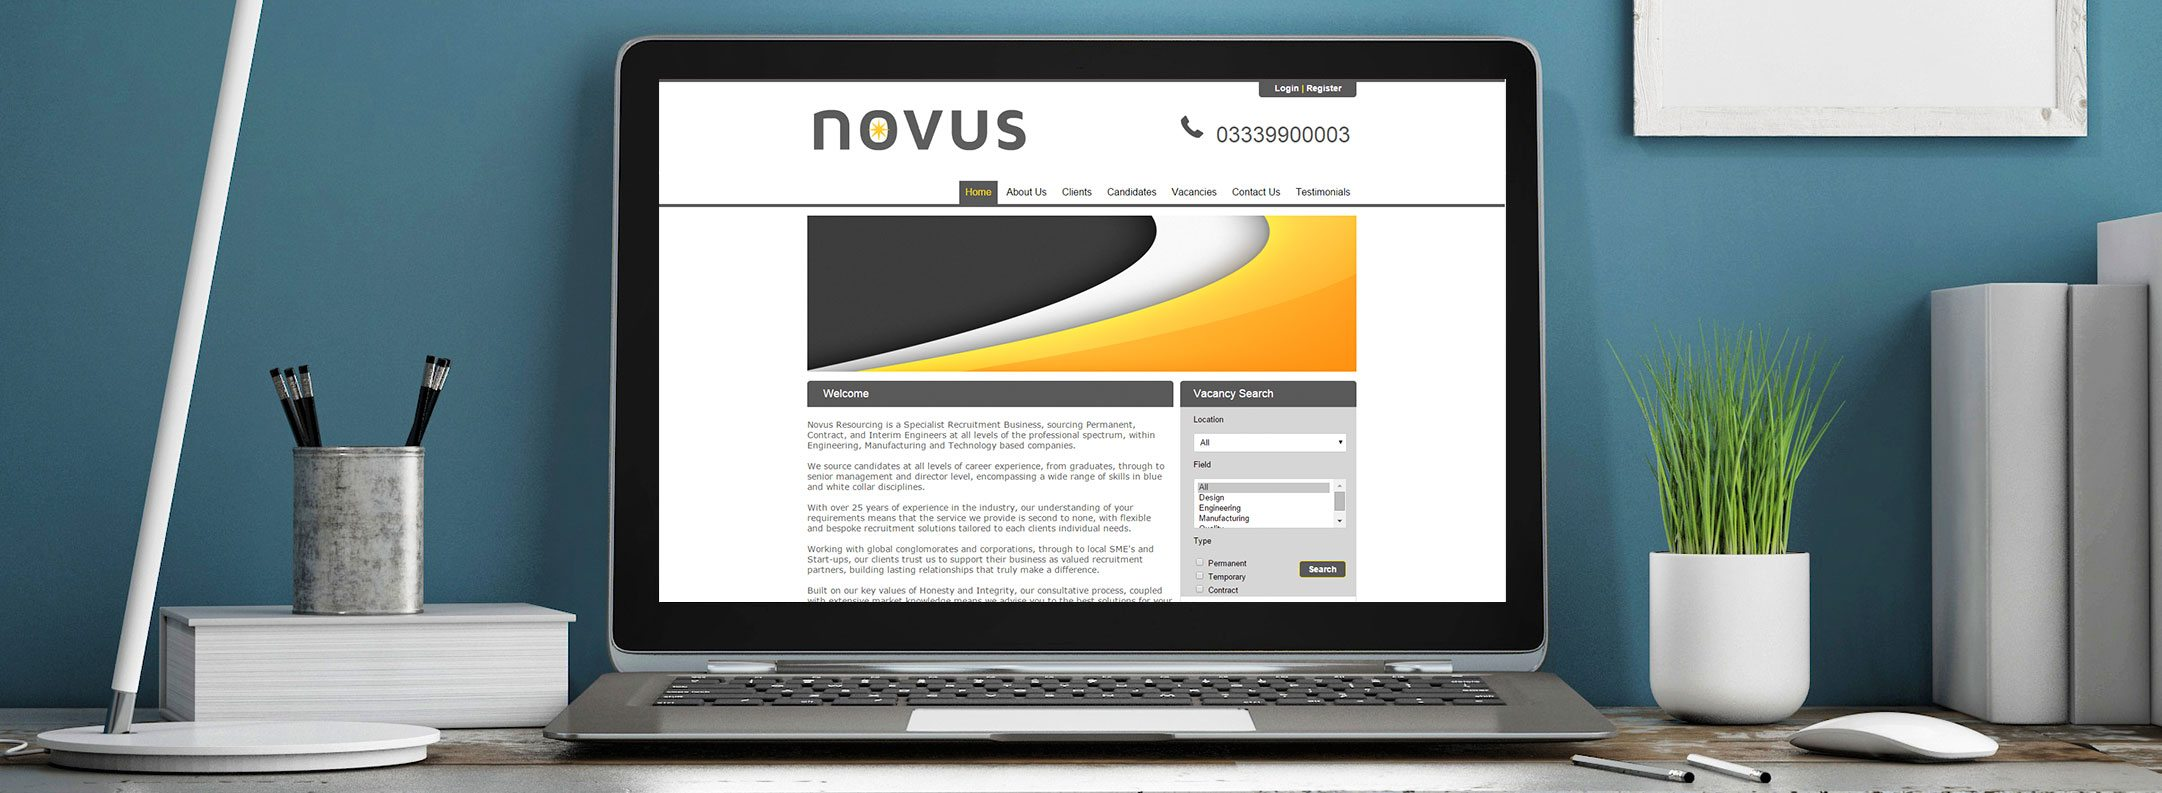 Website-banner-novus